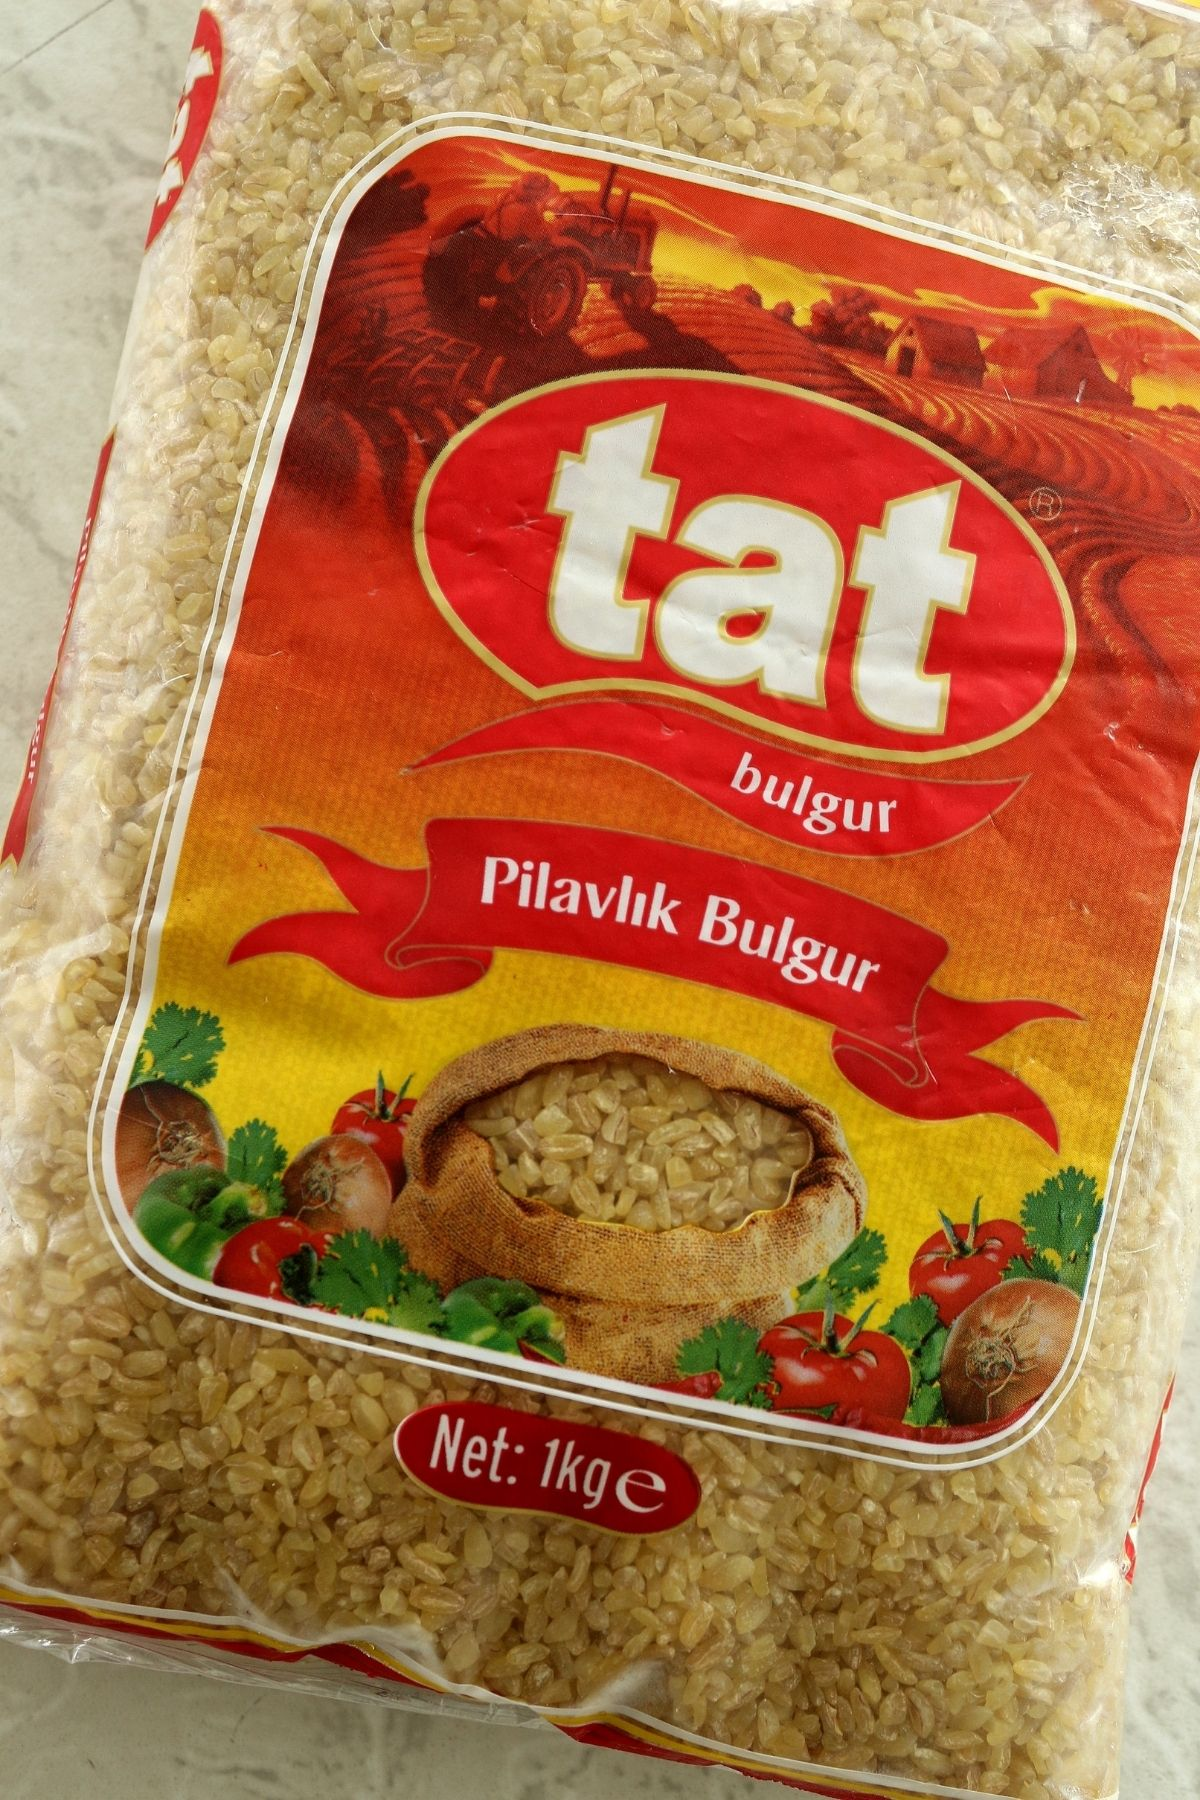 a package of coarse bulgur for making pilaf